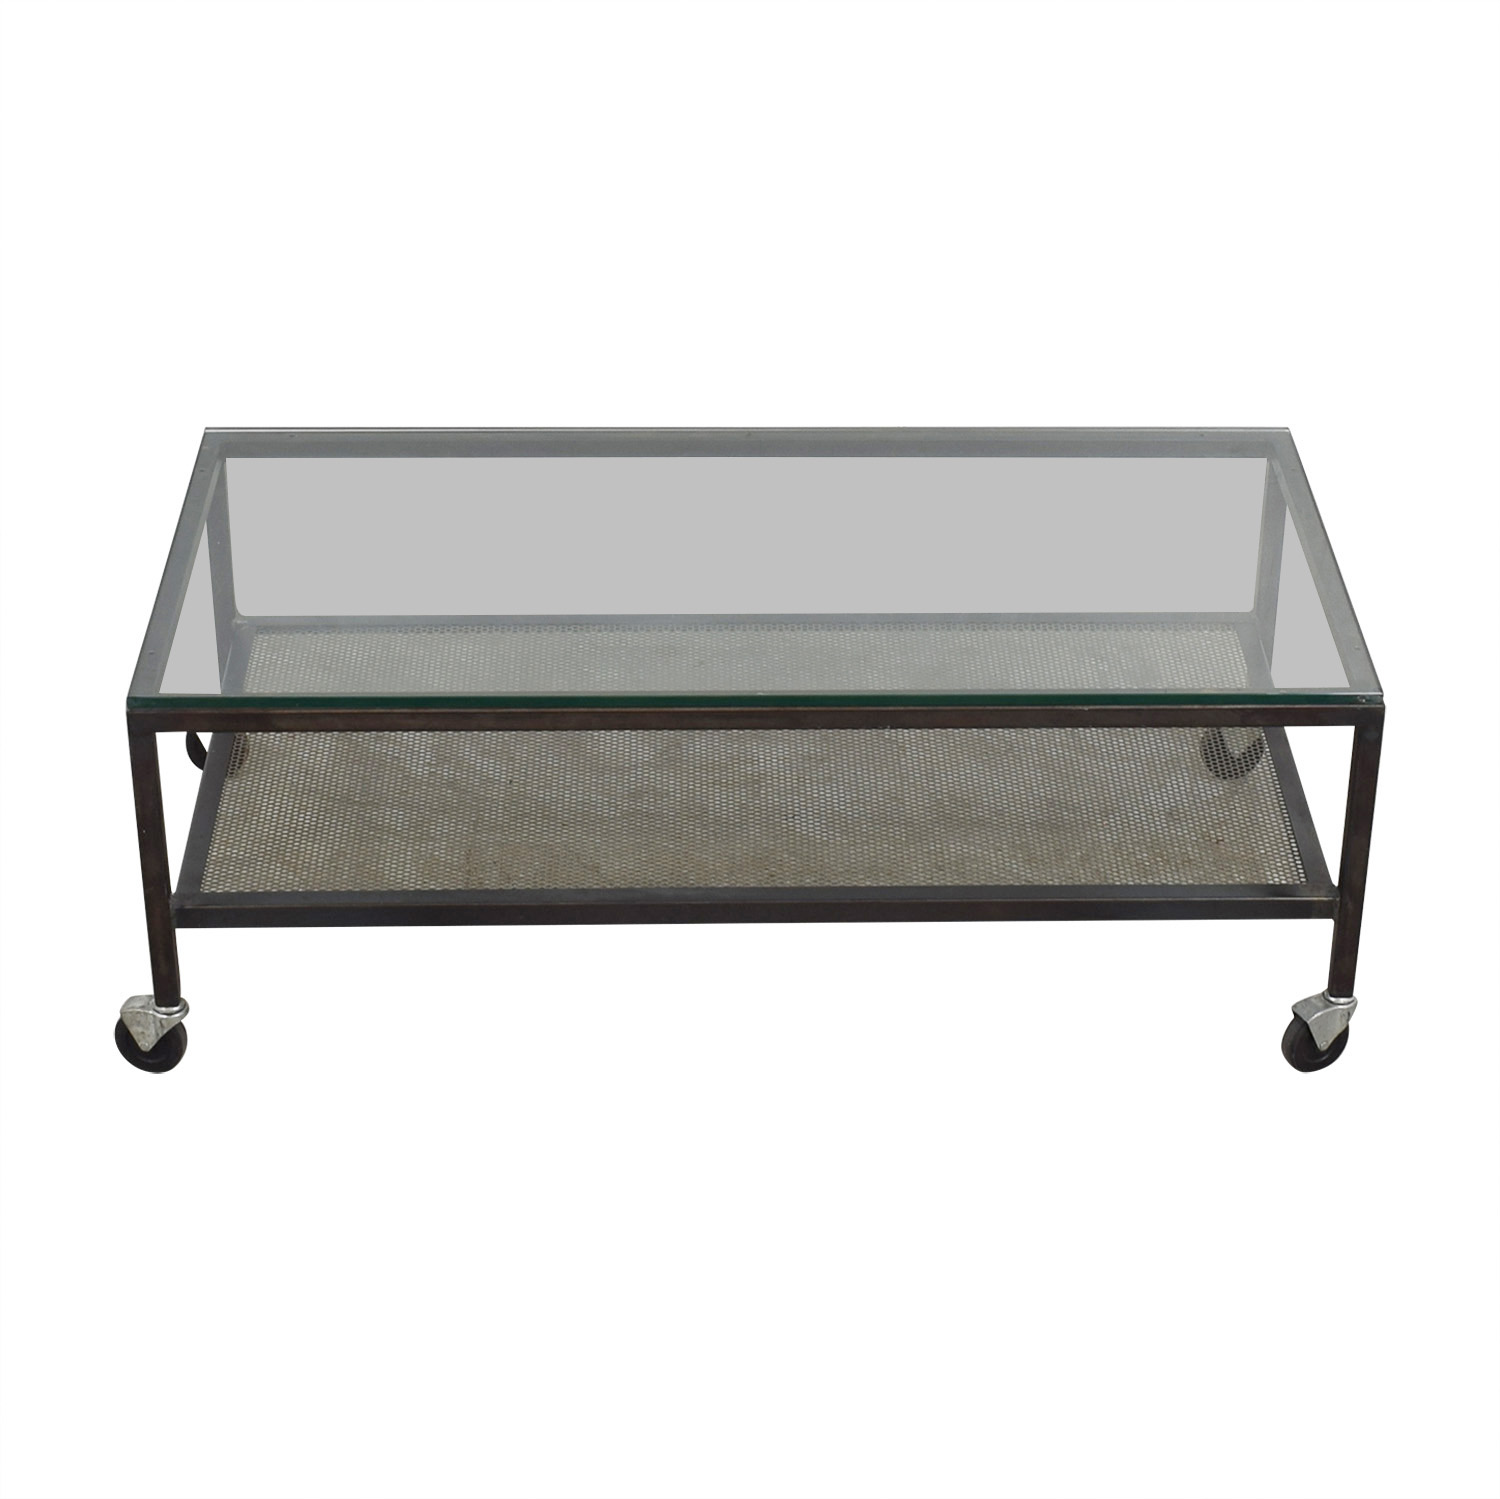 Mitchell Gold + Bob Williams Mitchell Gold + Bob Williams Industrial Glass Coffee Table on Castors used